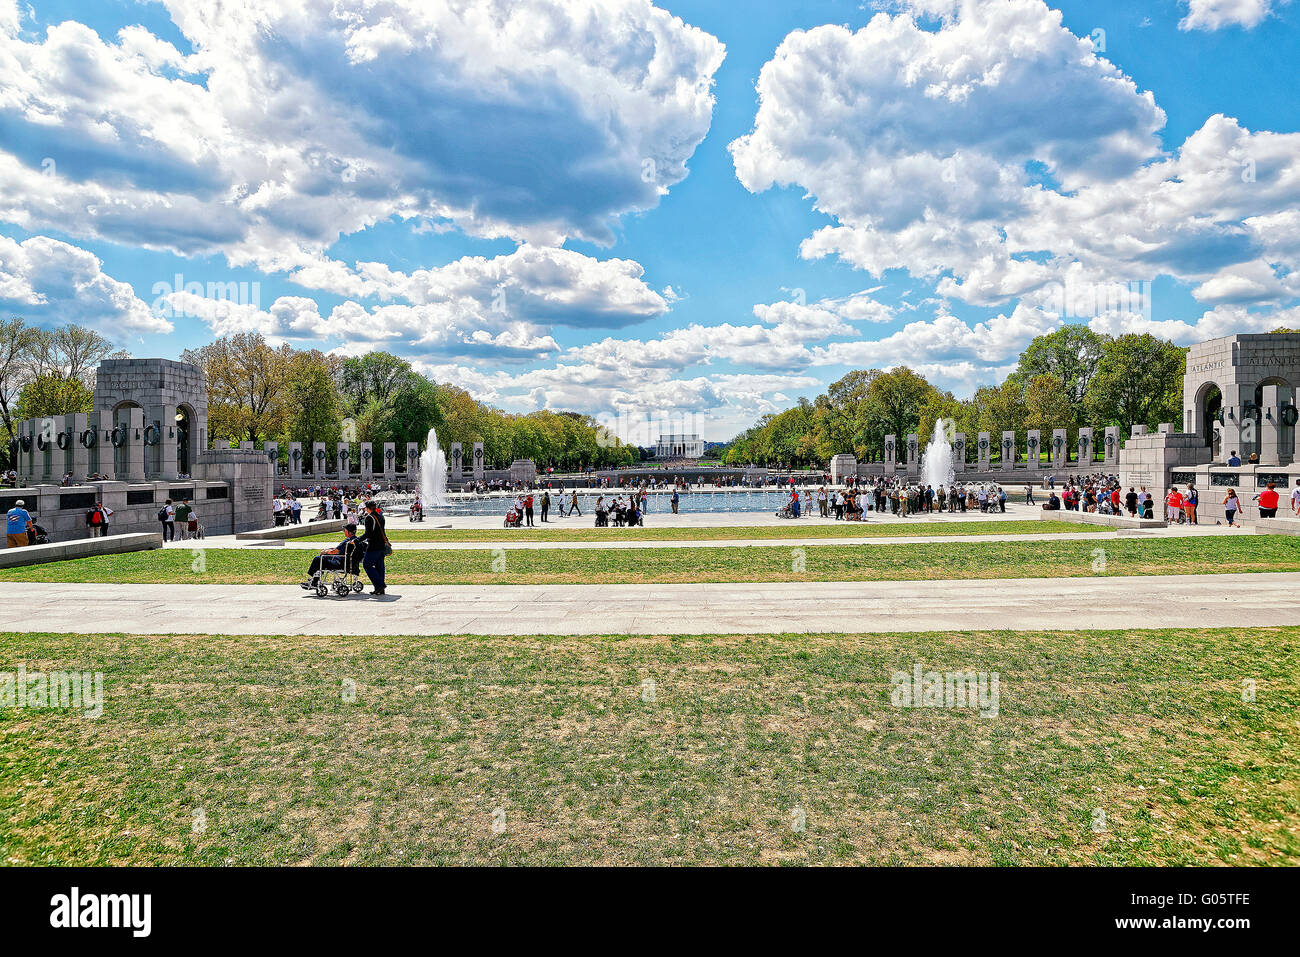 Washington DC, USA - May 2, 2015: War Veterans and guardians of Honor Flight nonprofit organization - Stock Image